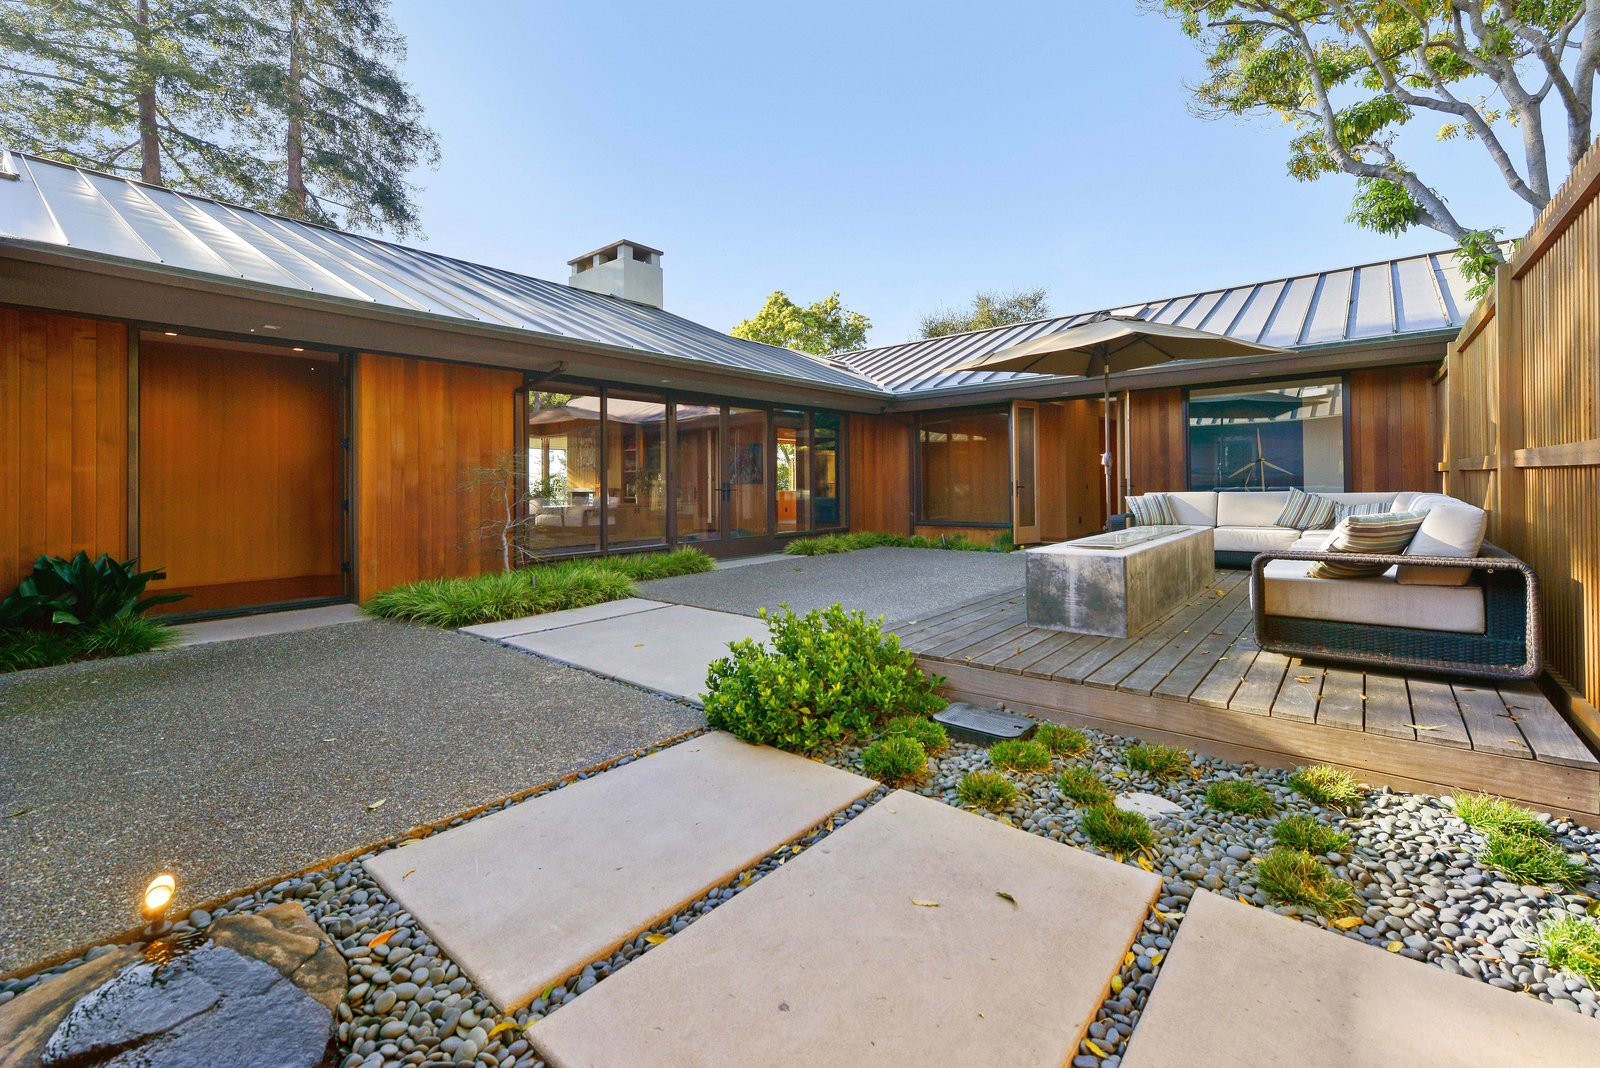 Shannon Bloemker's hillside home in Piedmont, California, is arranged in a C-shape with protected courtyards.  Photo 2 of 6 in A Quintessential Midcentury Home Goes LEED Platinum